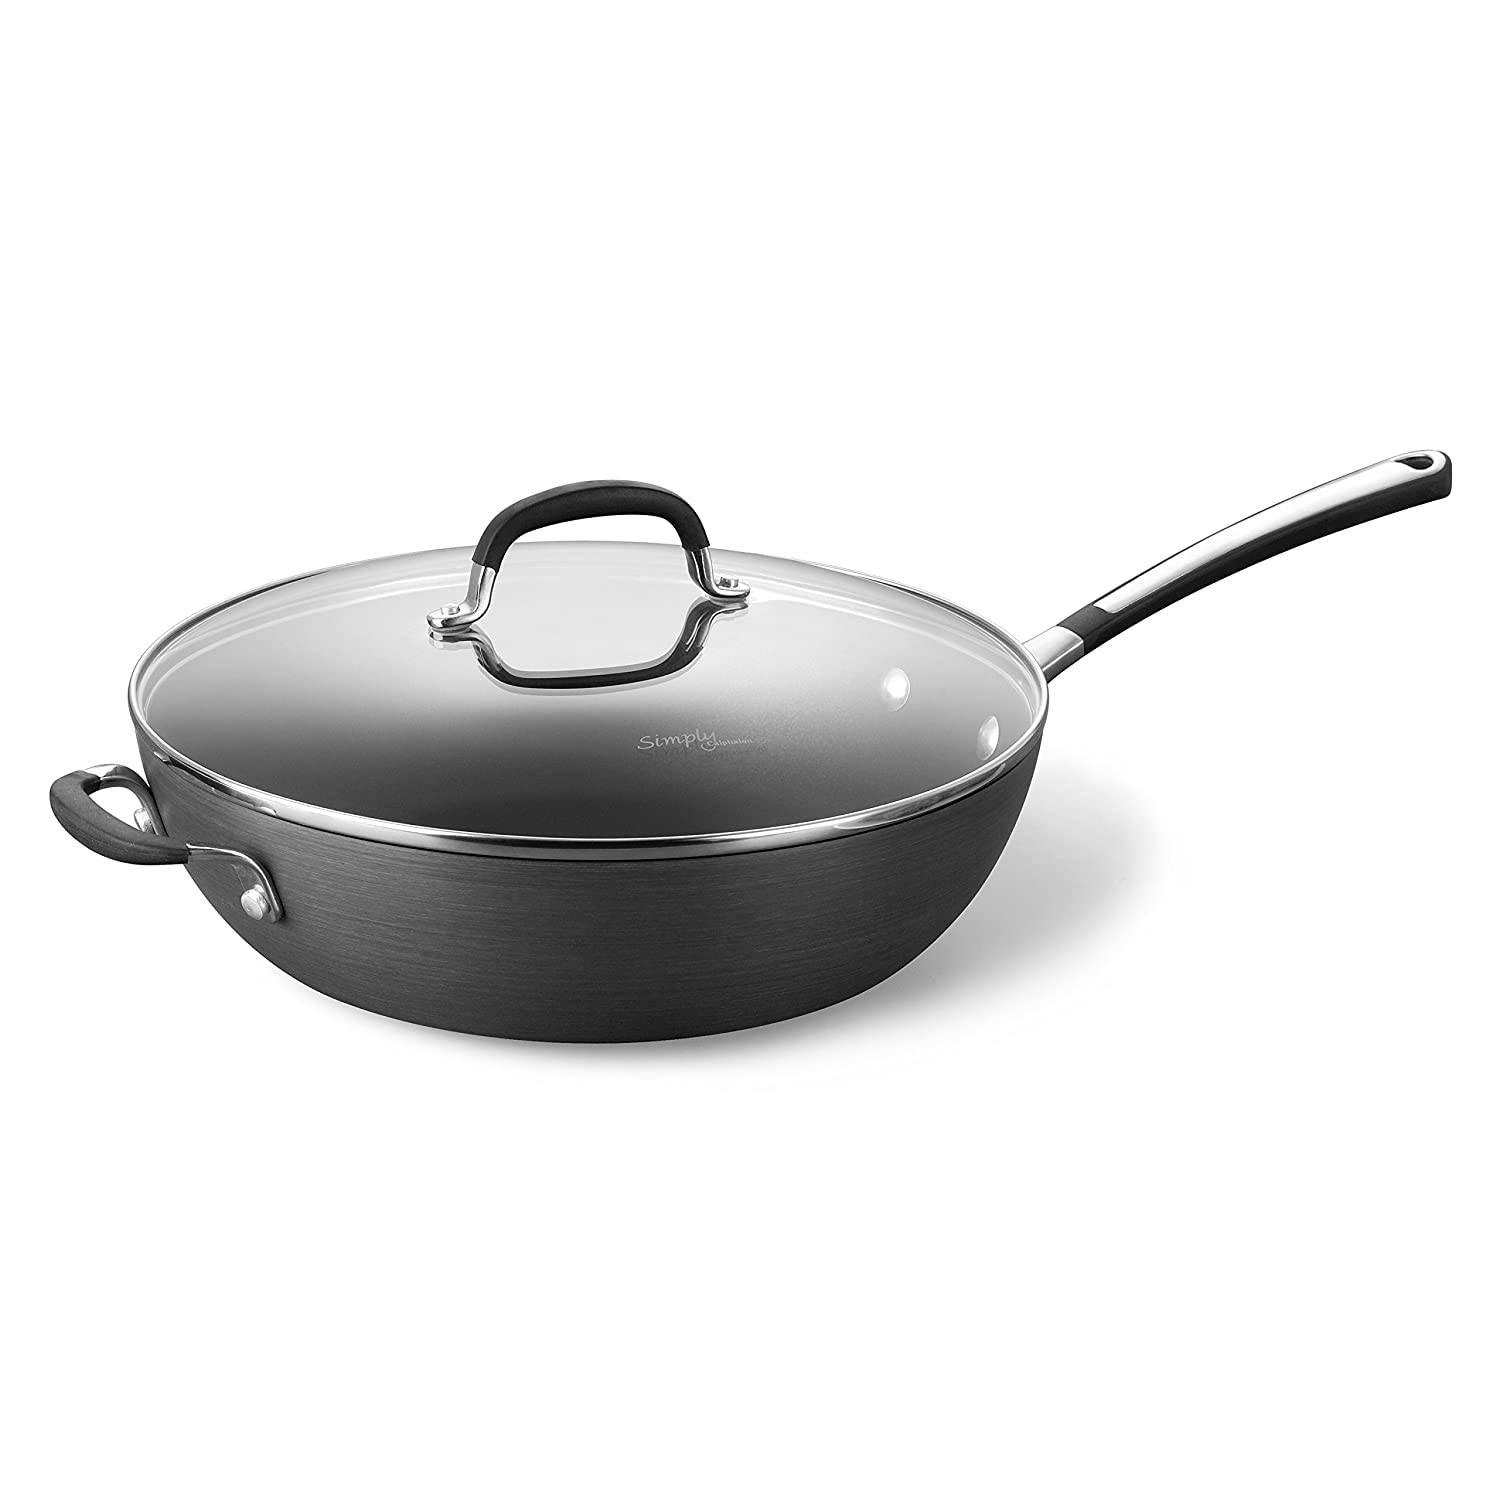 "Simply Calphalon Nonstick 12"" Jumbo Deep Fry Pan"